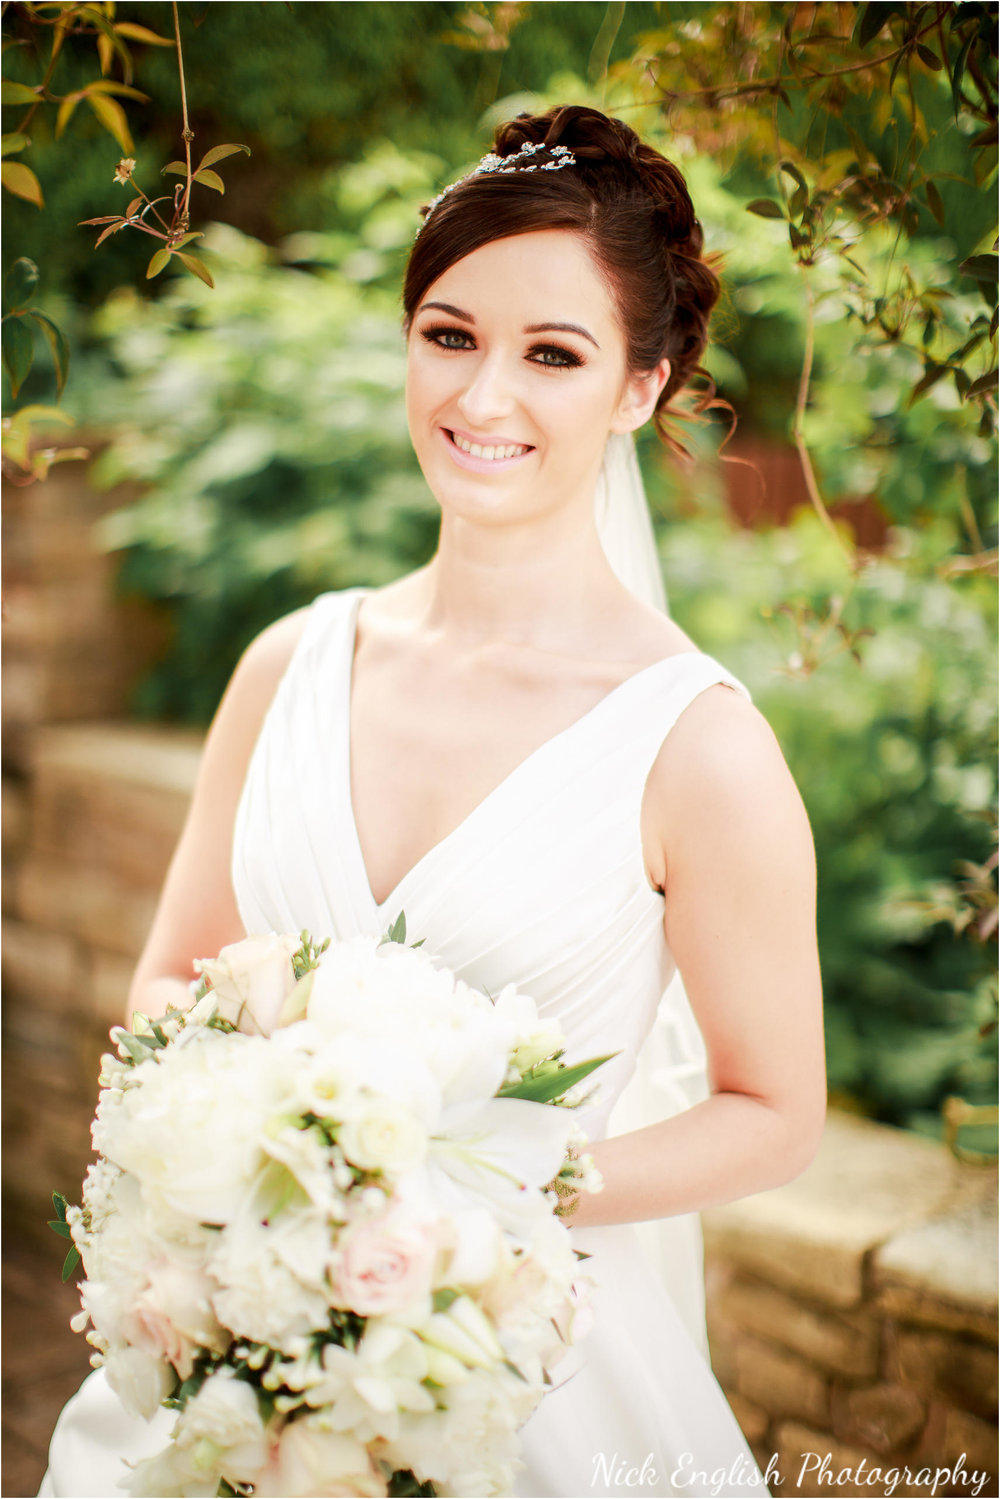 Emily David Wedding Photographs at Barton Grange Preston by Nick English Photography 41jpg.jpeg